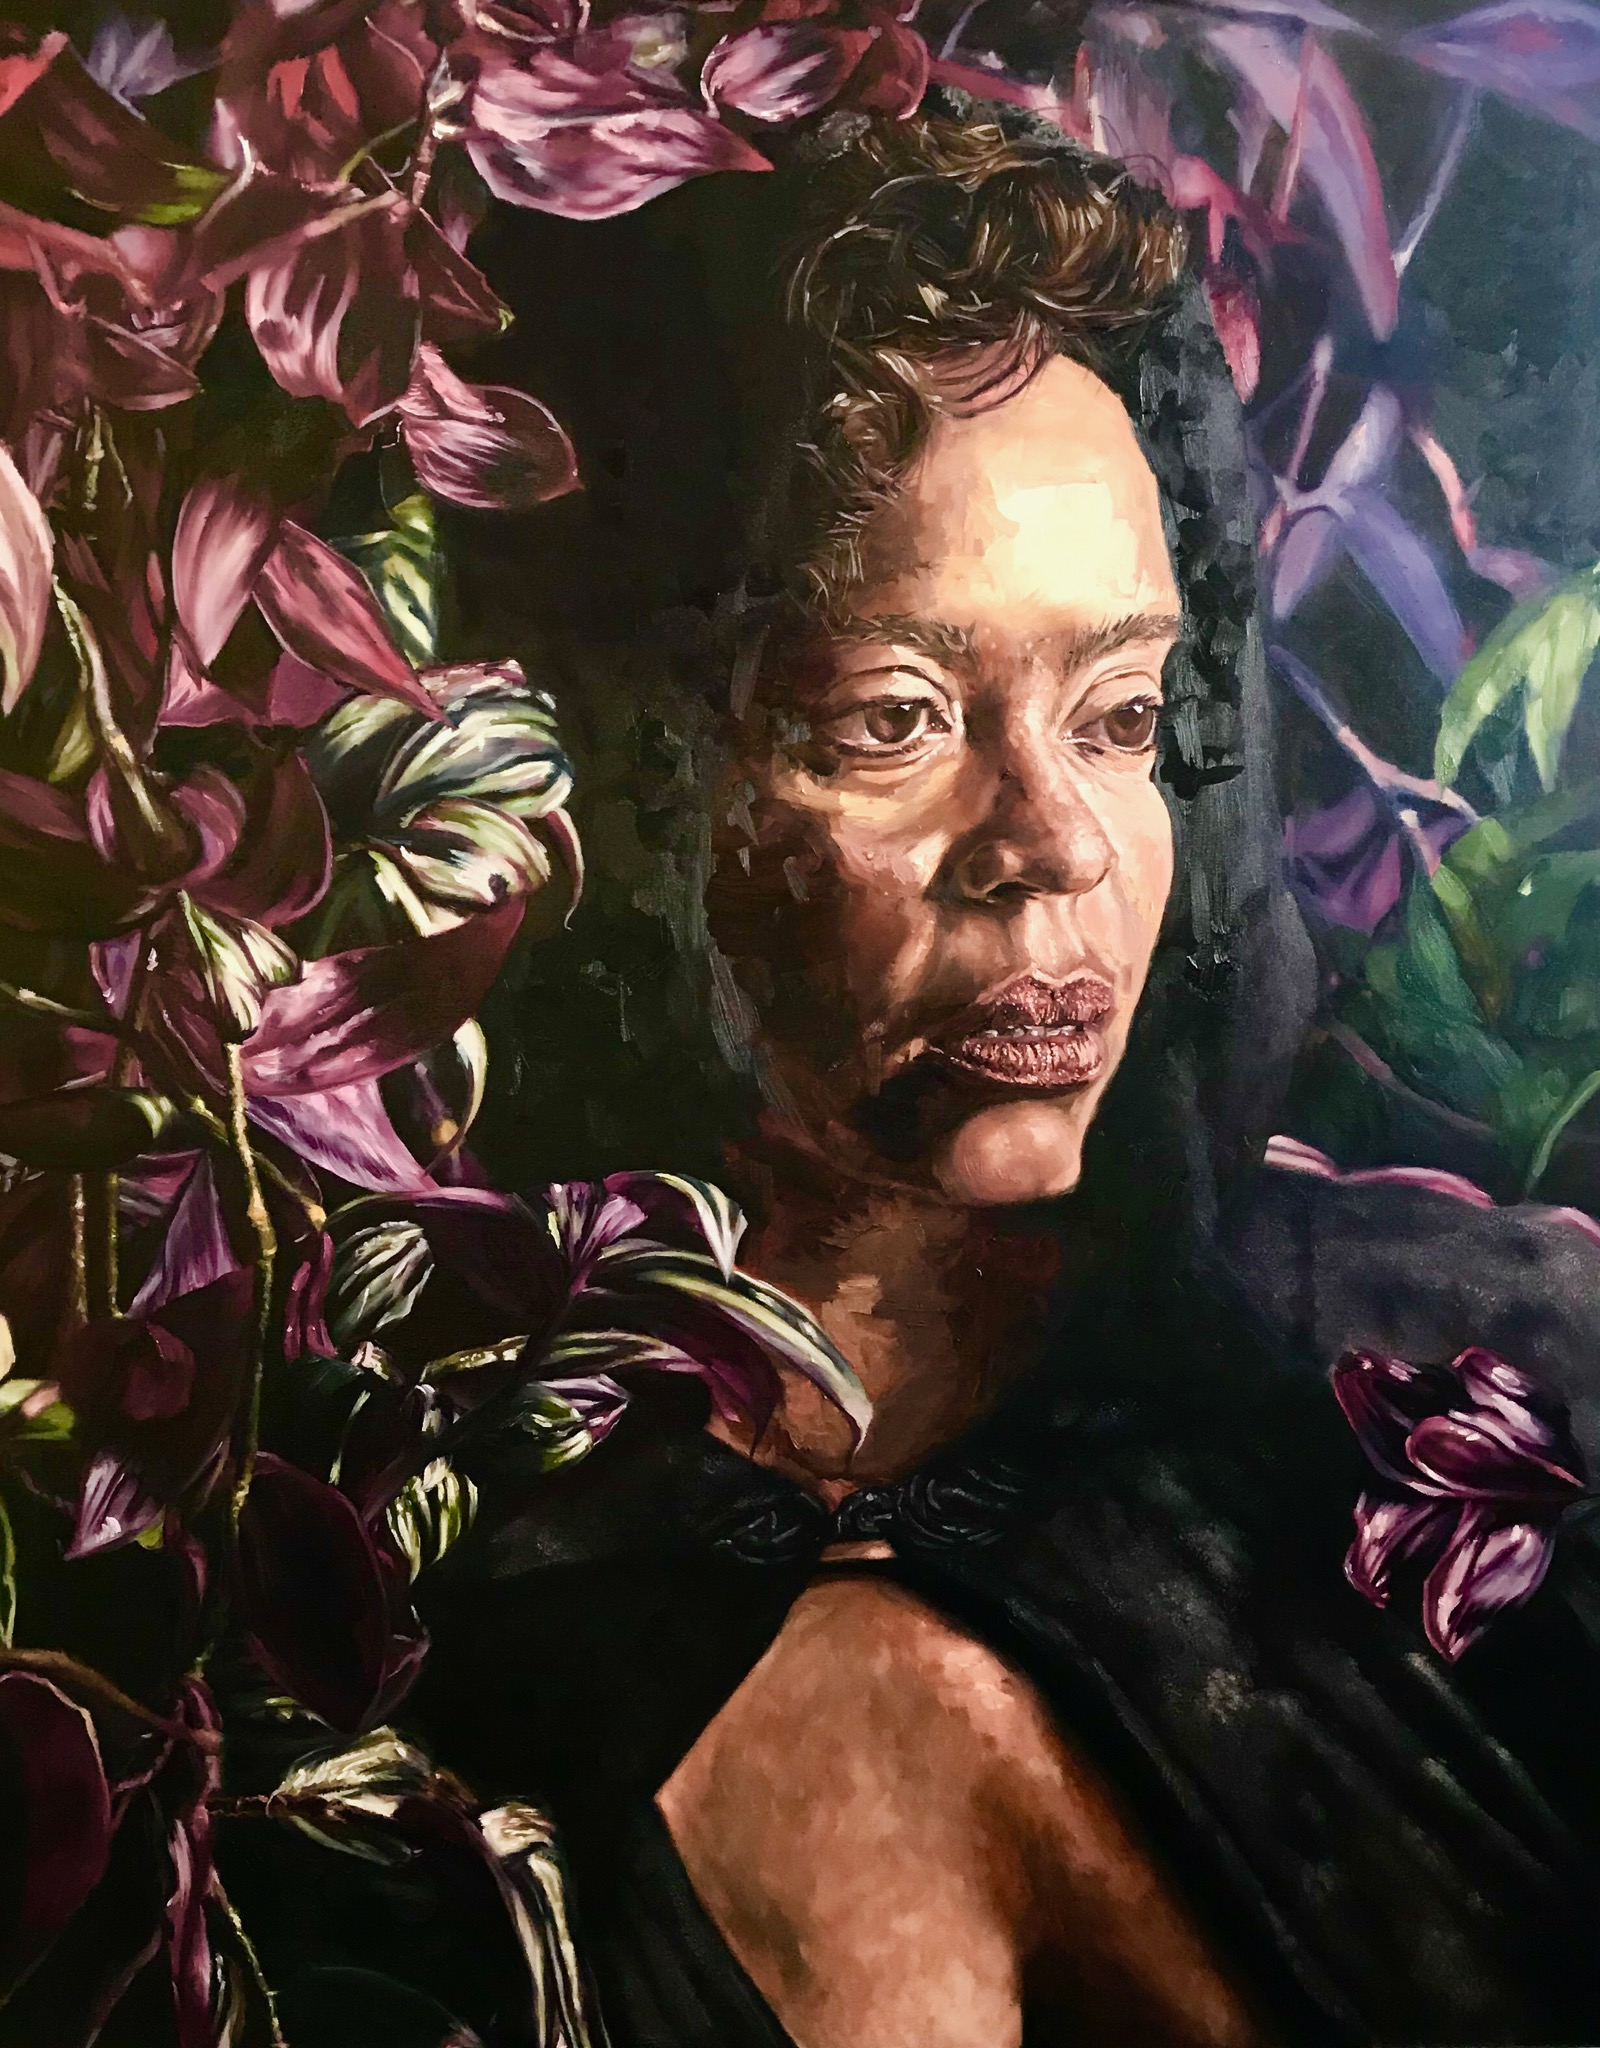 MAÑANA, oil on canvas, 48 x 60 inches, 2018